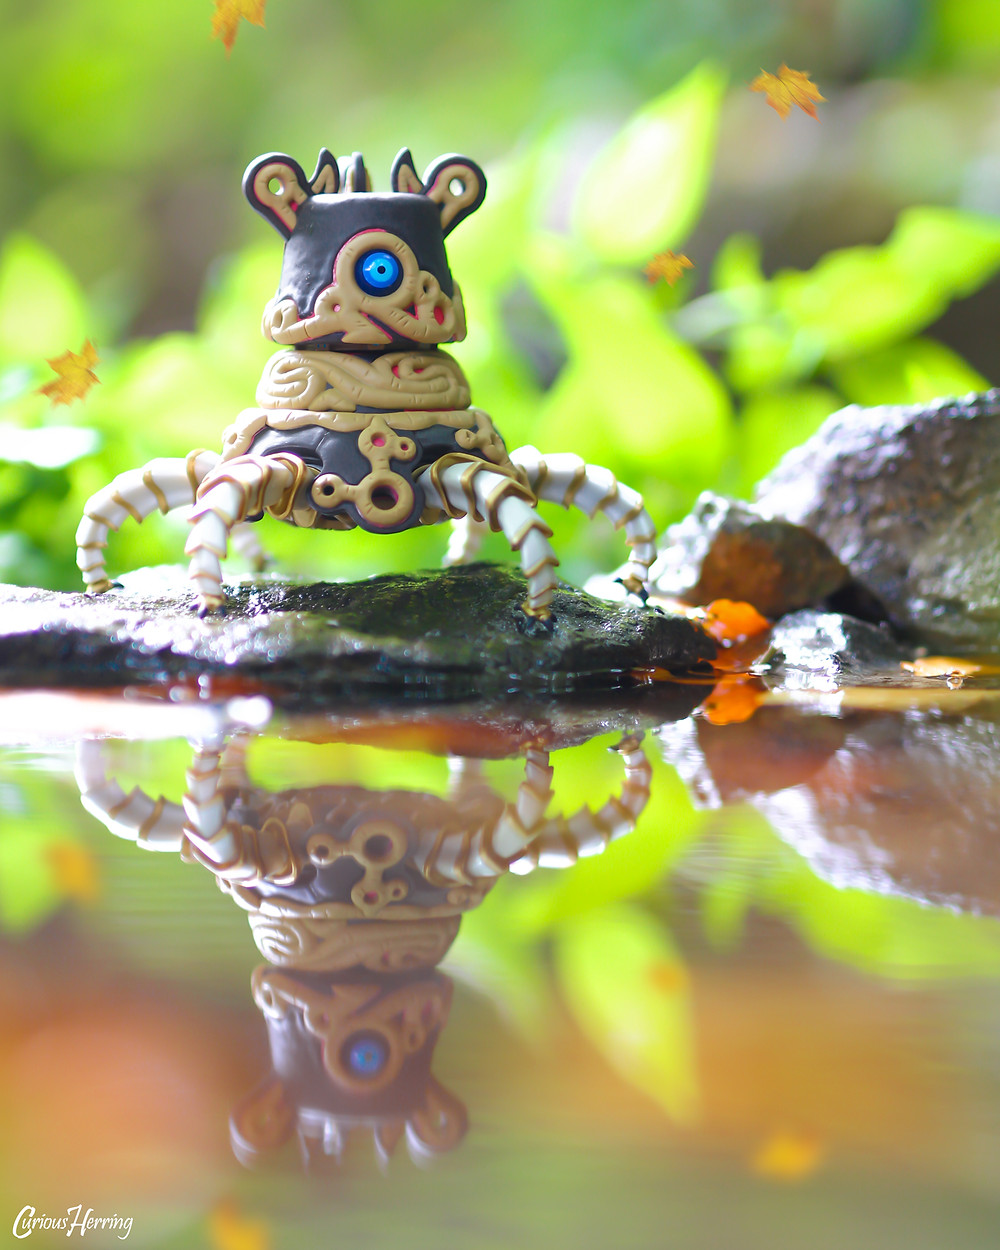 Toy photography by CuriousHerring of Guardian Nendoroid from Nintendo Zelda, Breath of the Wild. A guardian sits at the edge of the lake, watching the world go by.